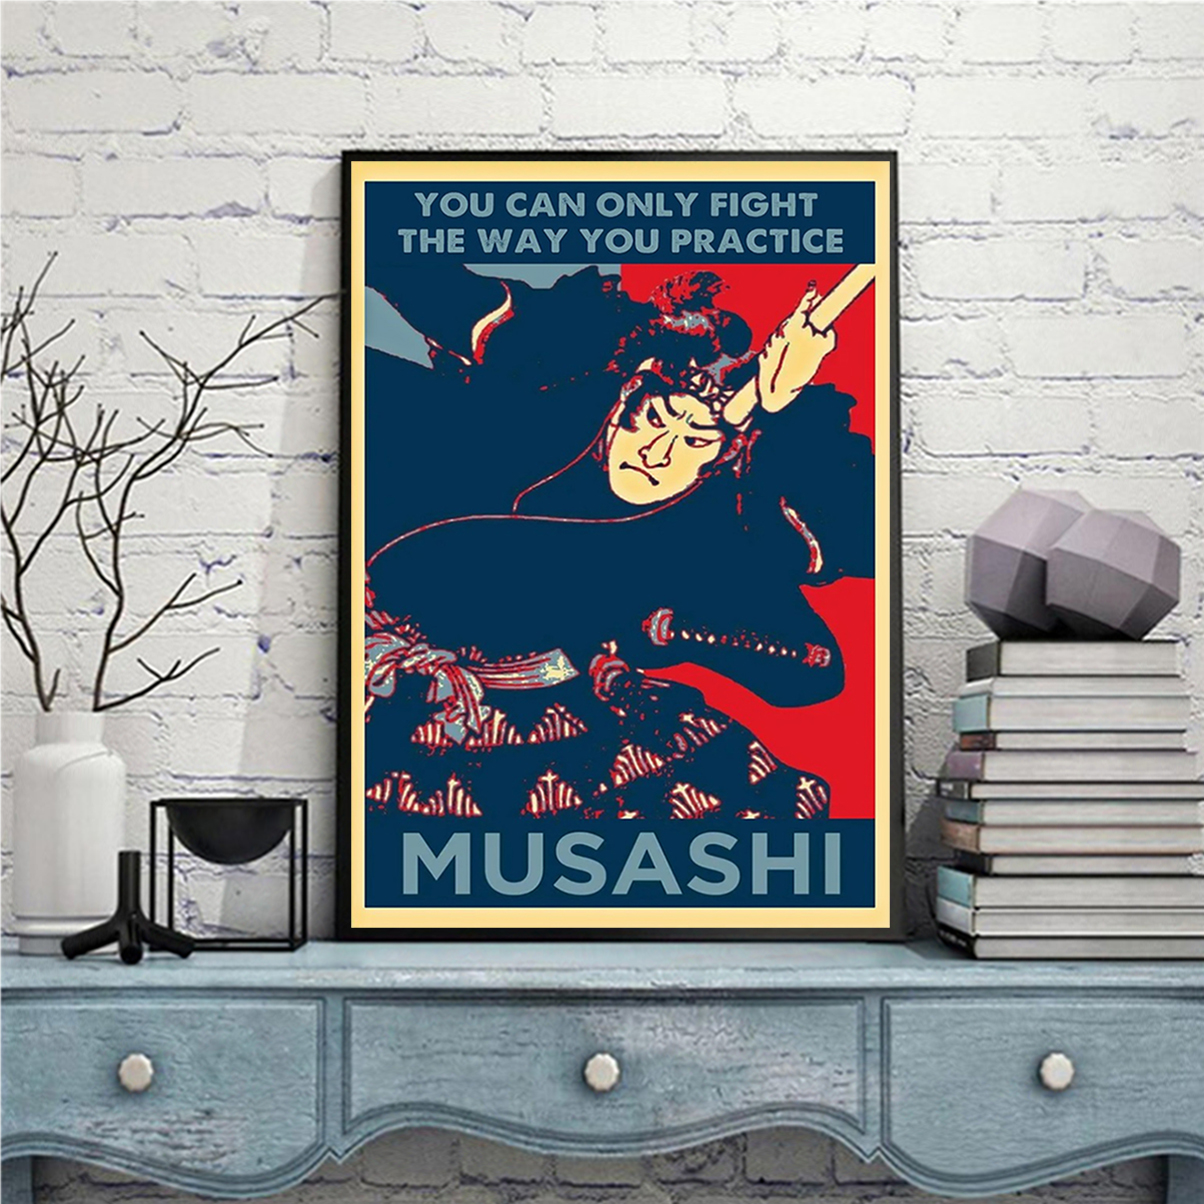 Samurai you can only fight the way you practice musashi poster A1